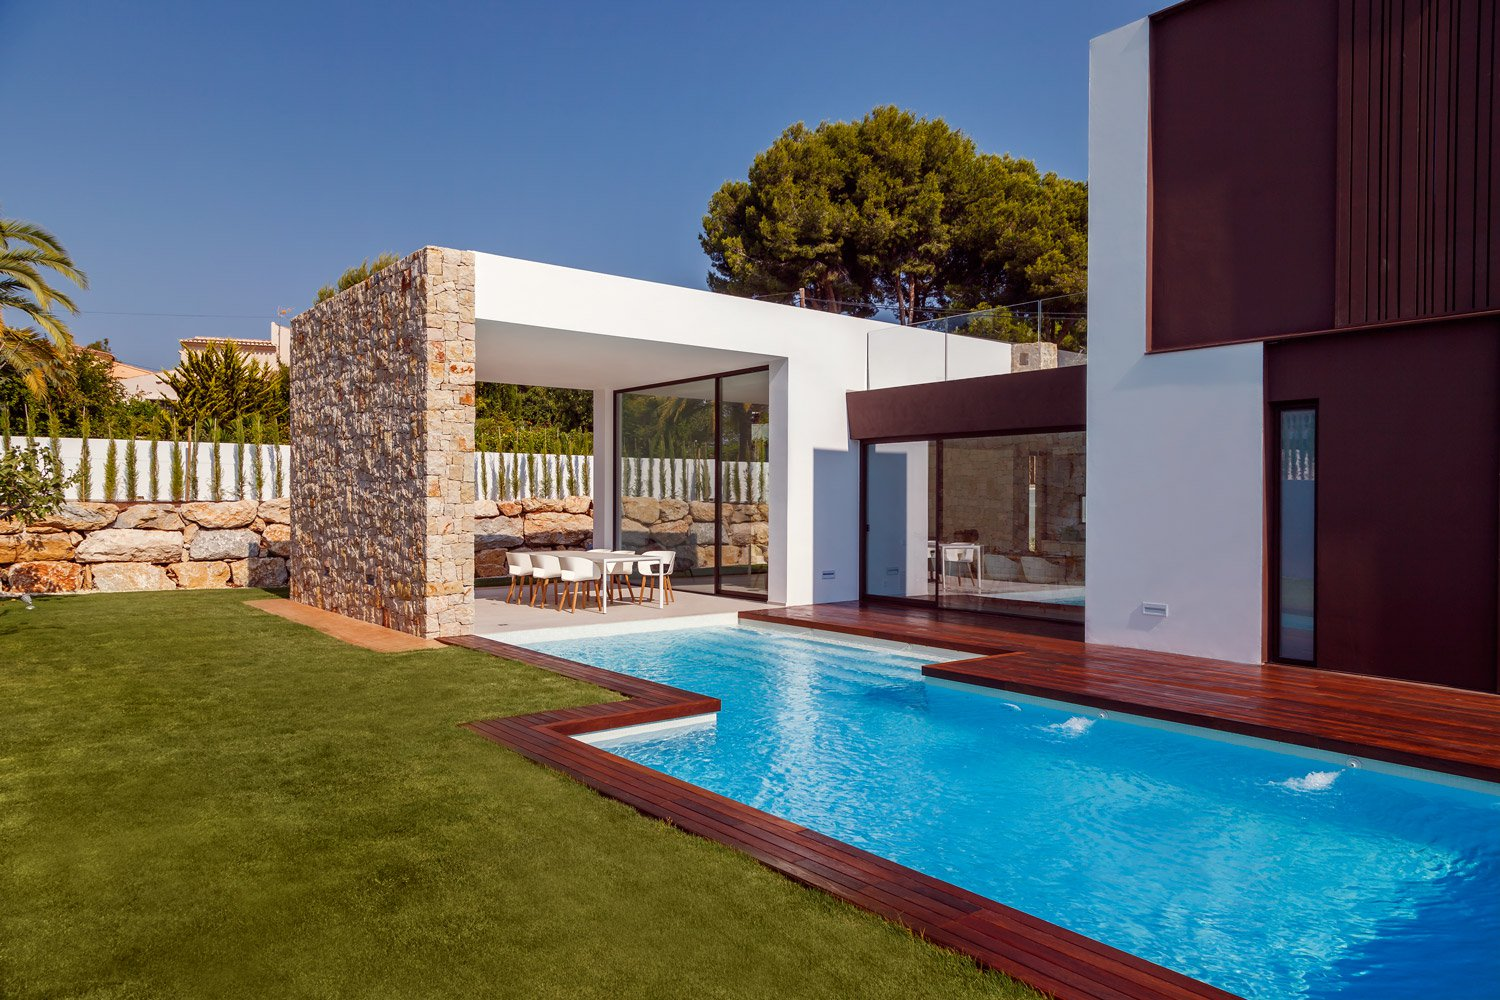 New development in Moraira